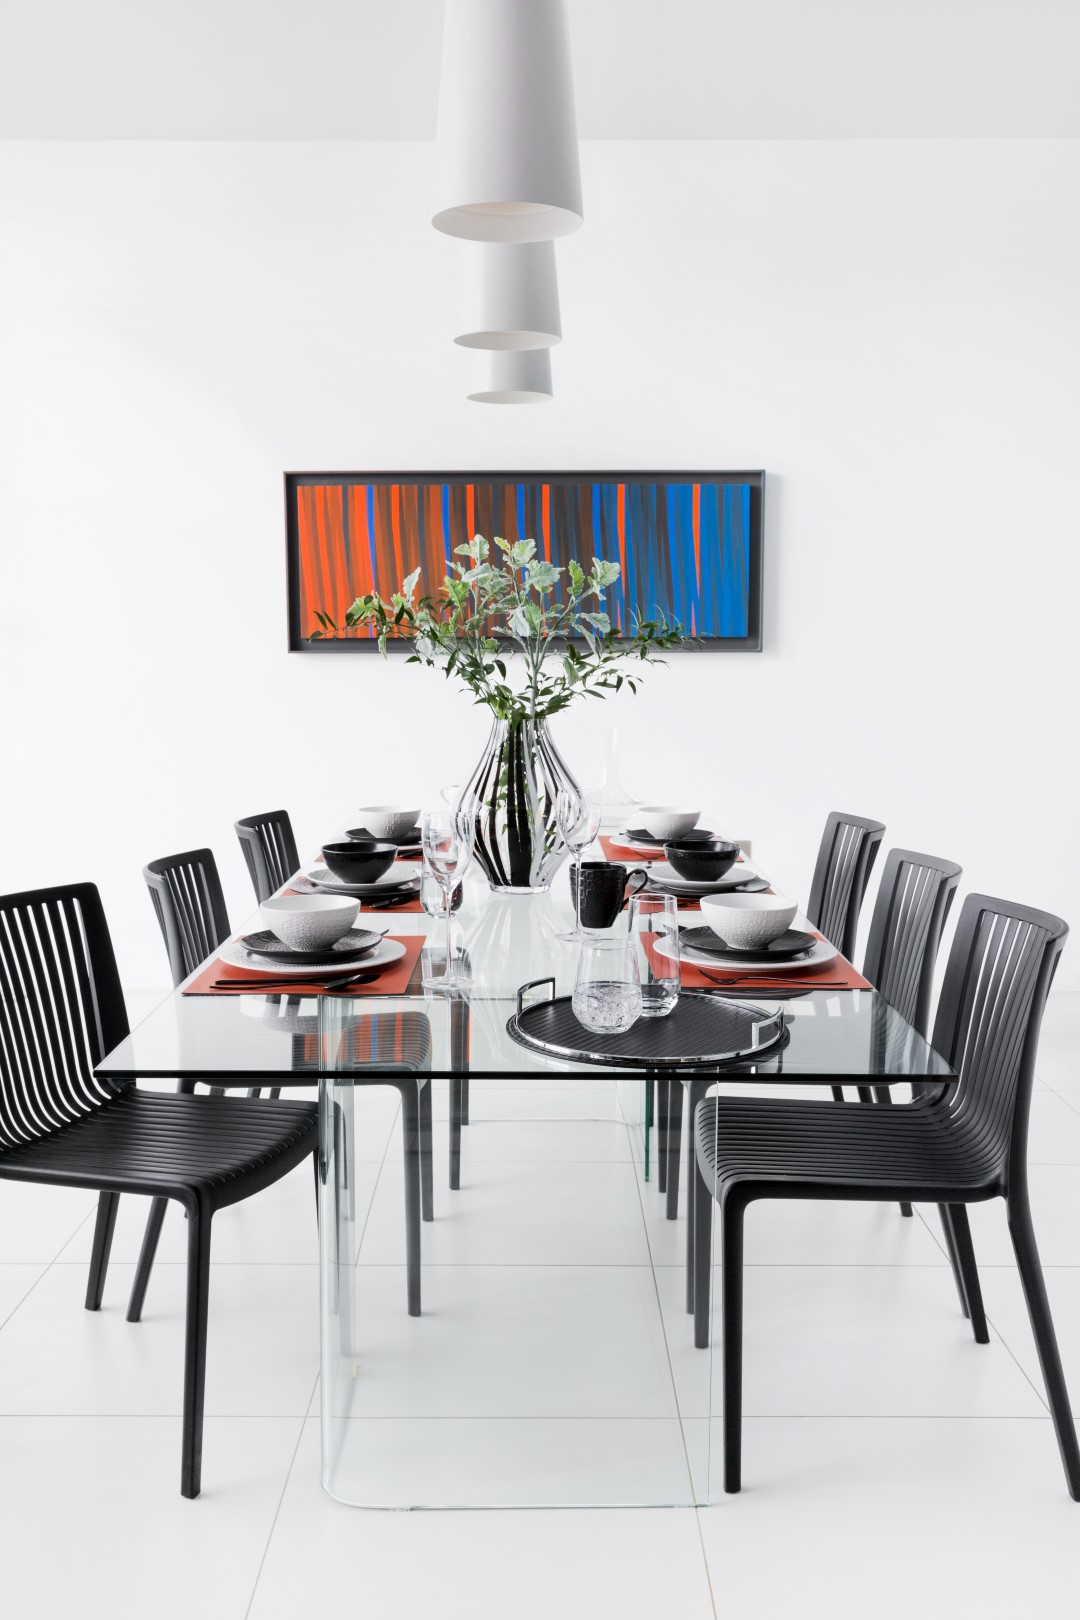 10 Top Dining Room Ideas To Make Every Meal An Occasion